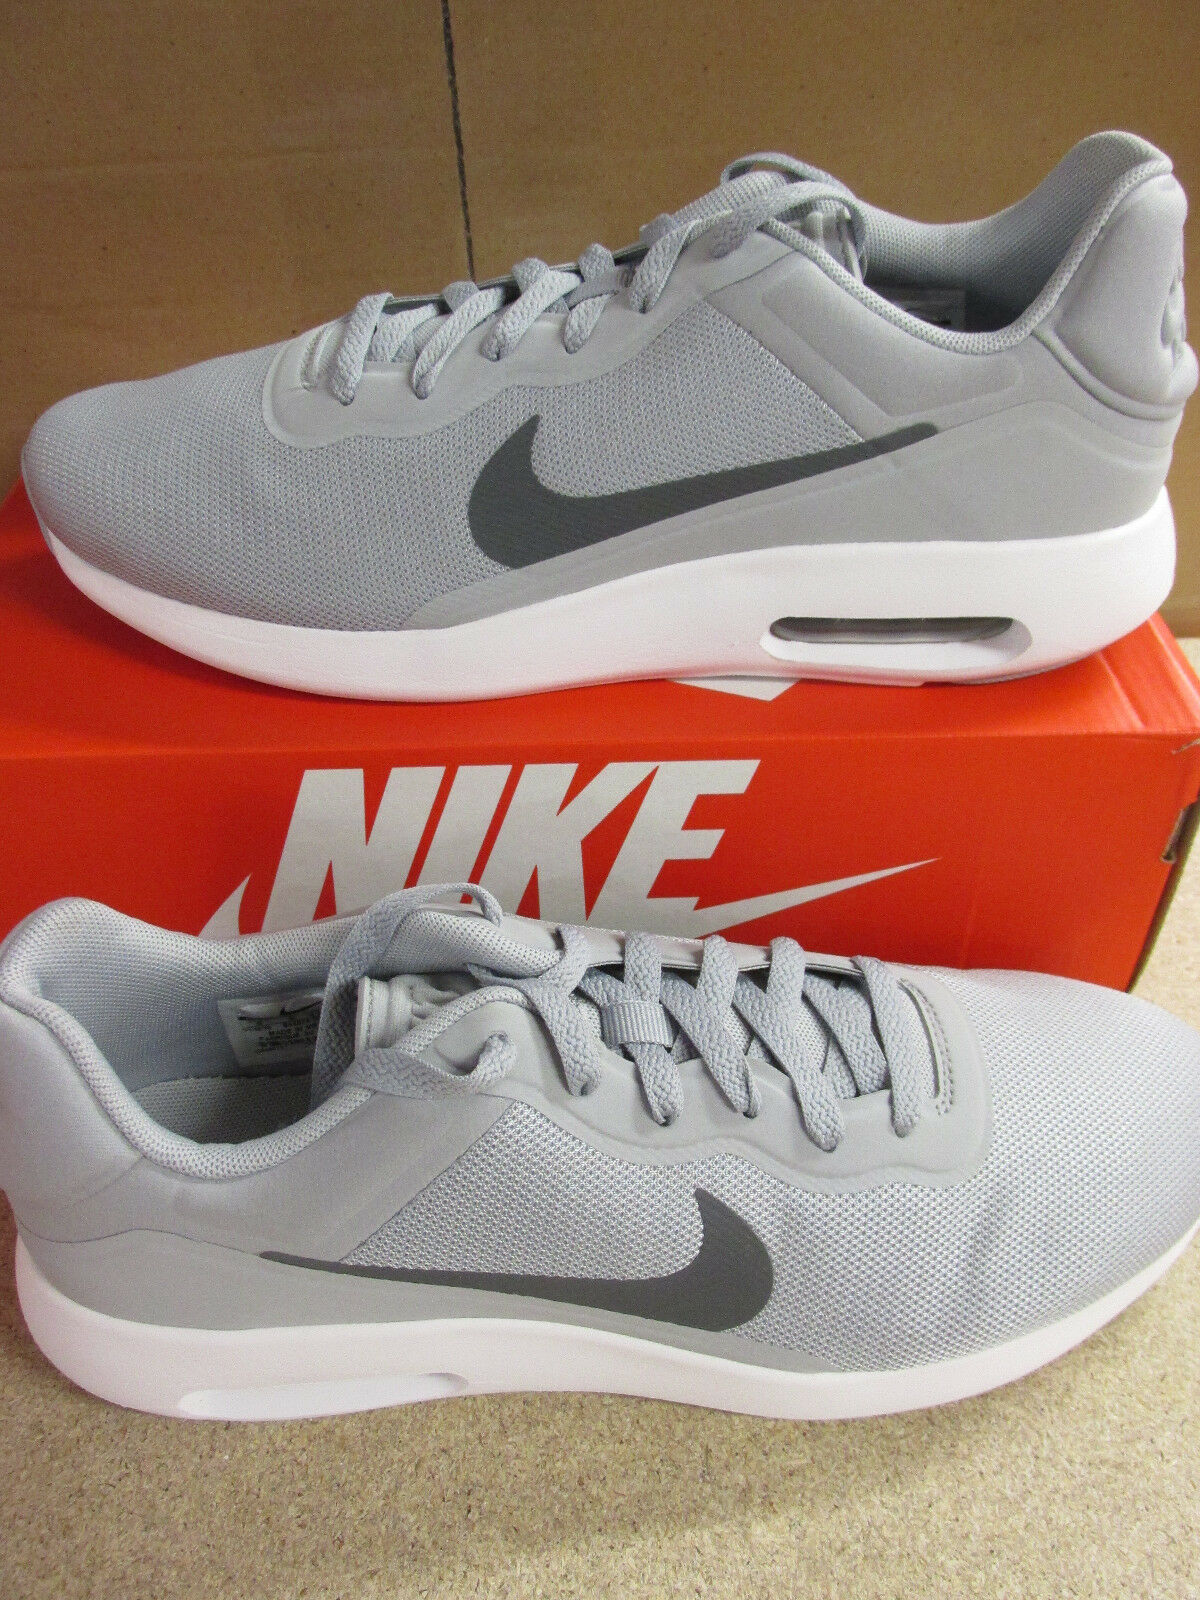 65b70cc018 nike air max modern essential mens running trainers 844874 002 sneakers  shoes 85%OFF